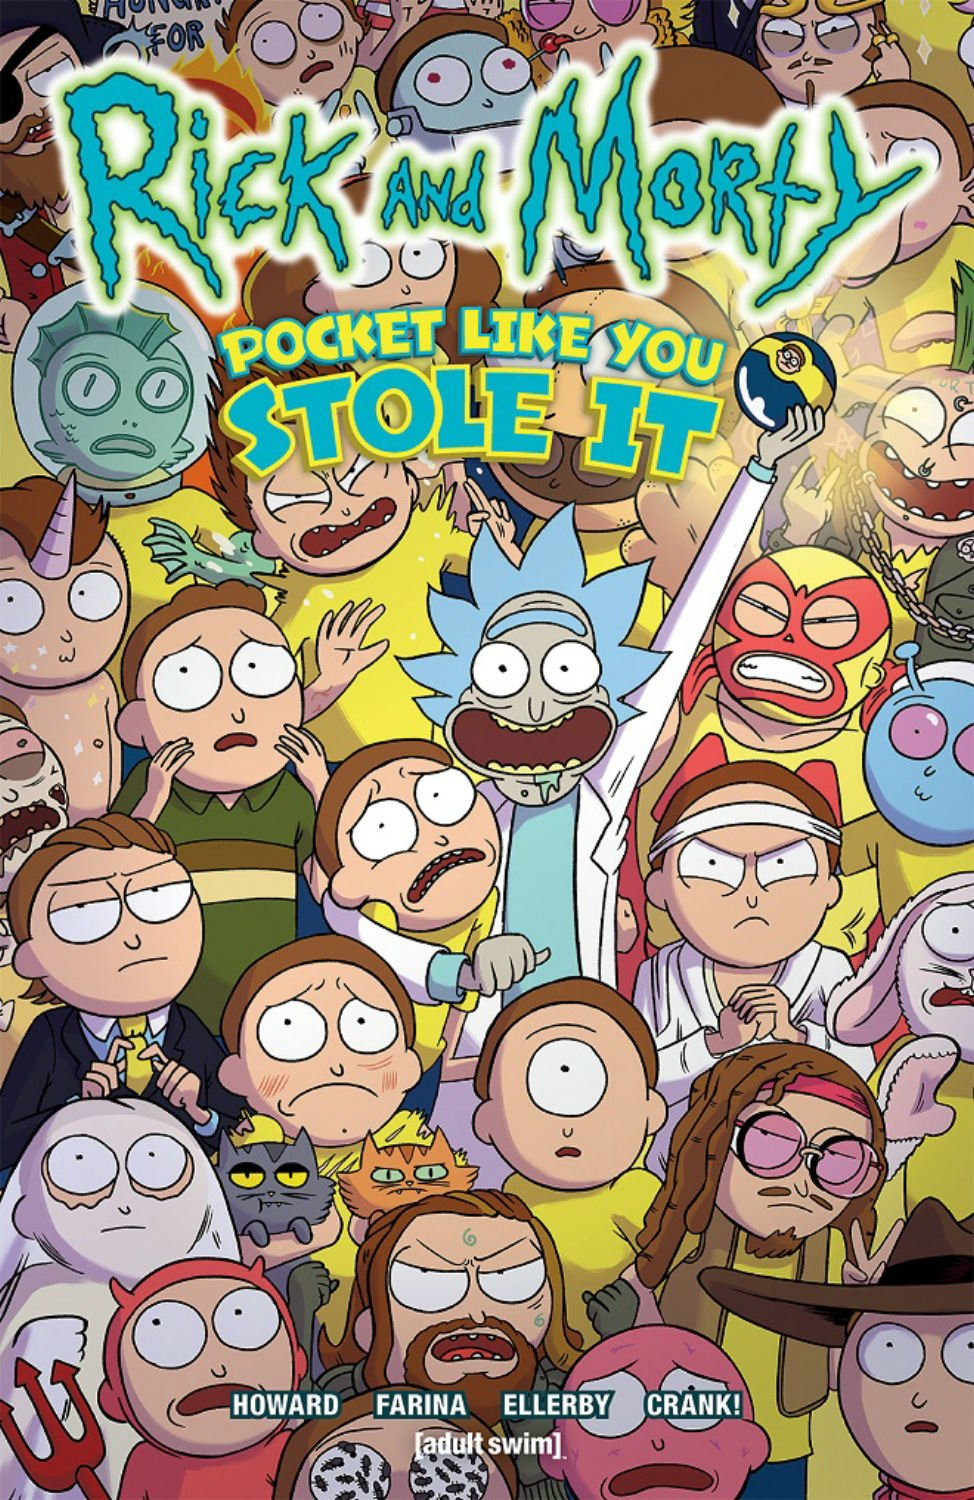 Rick and Morty: Pocket Like You Stole It (volume)